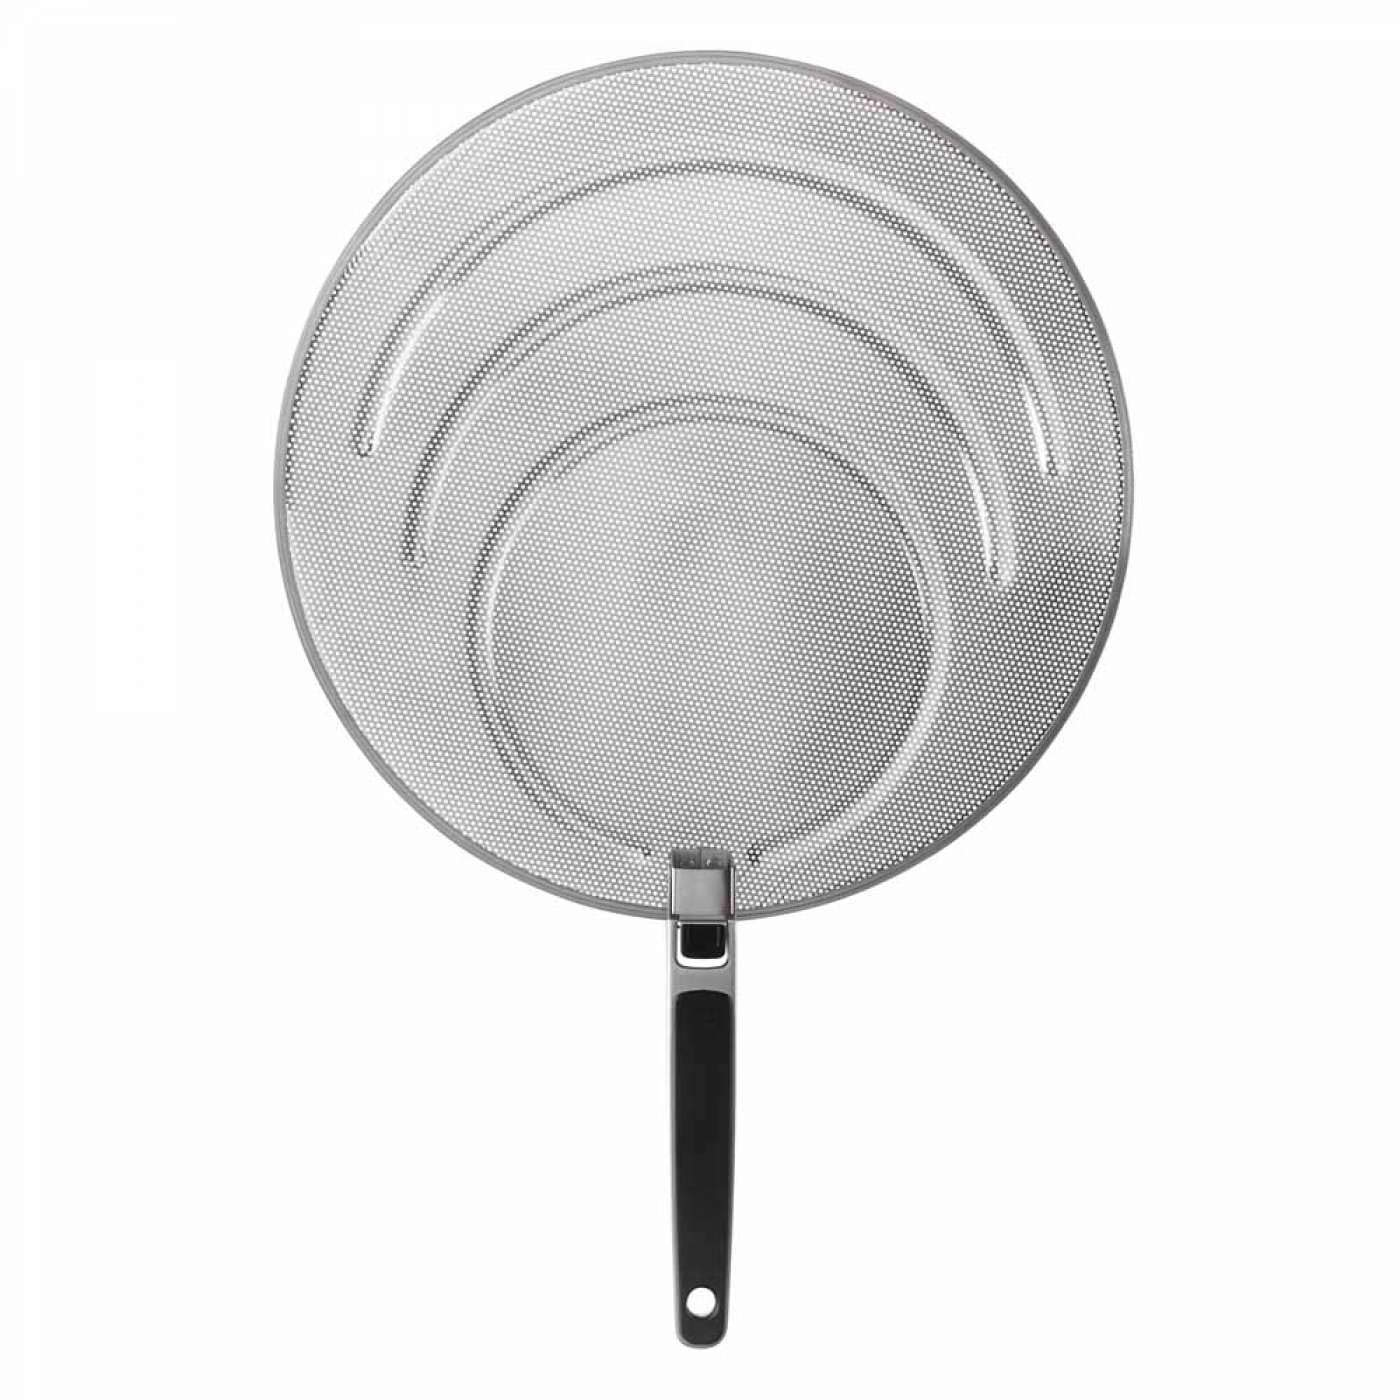 OXO Good Grips Splatter Screen - Fits Pans up to 33cm